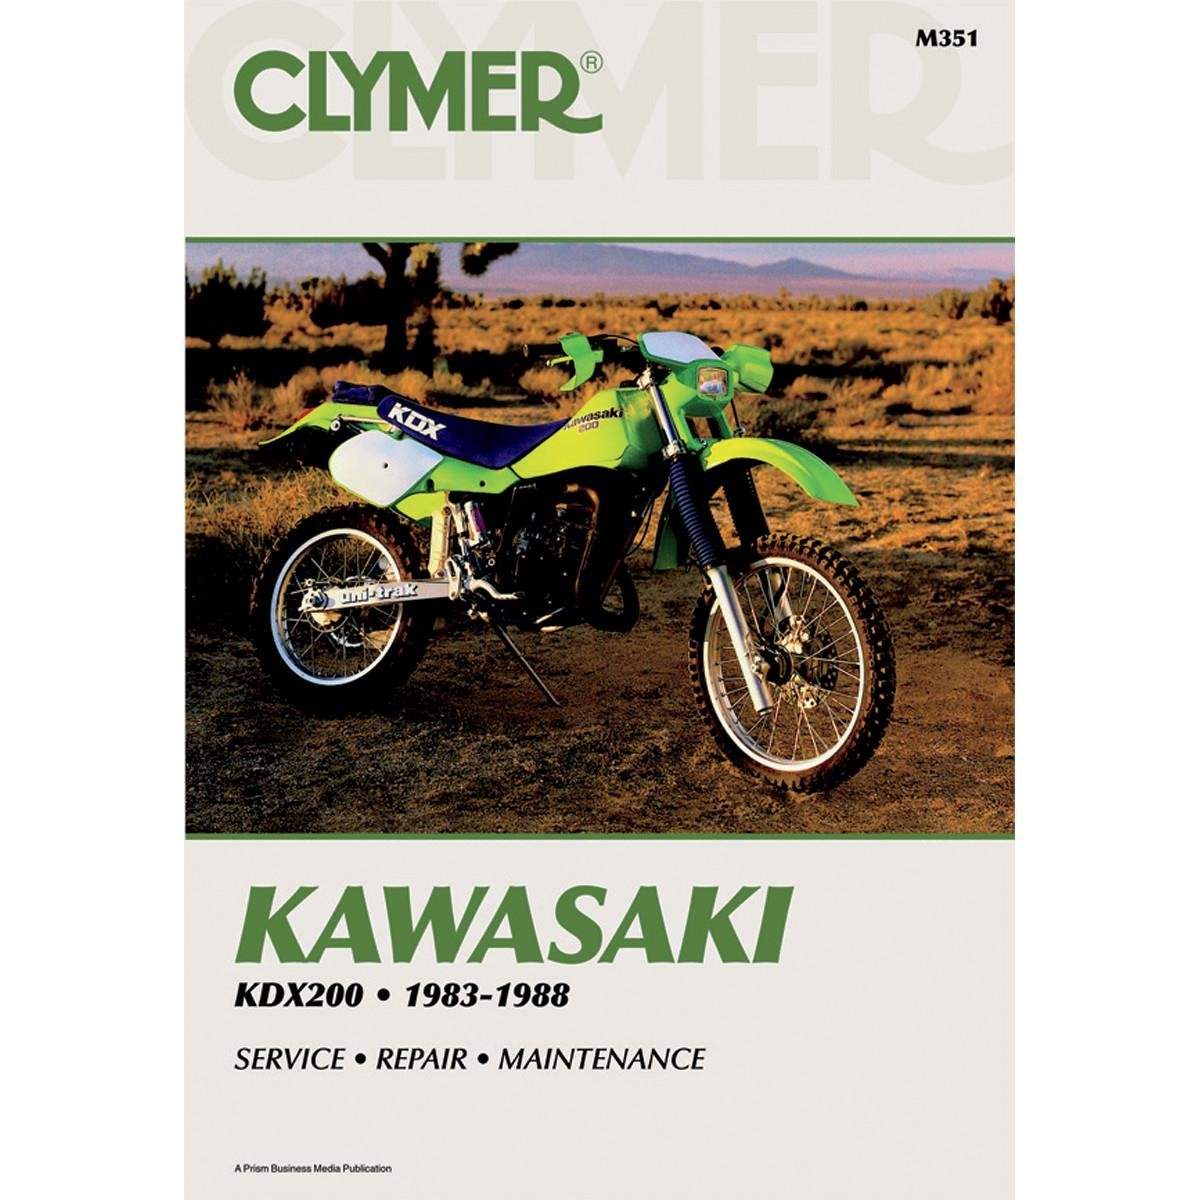 Amazon.com: Clymer Repair Manual for Kawasaki KDX200 KDX-200 83-88:  Automotive